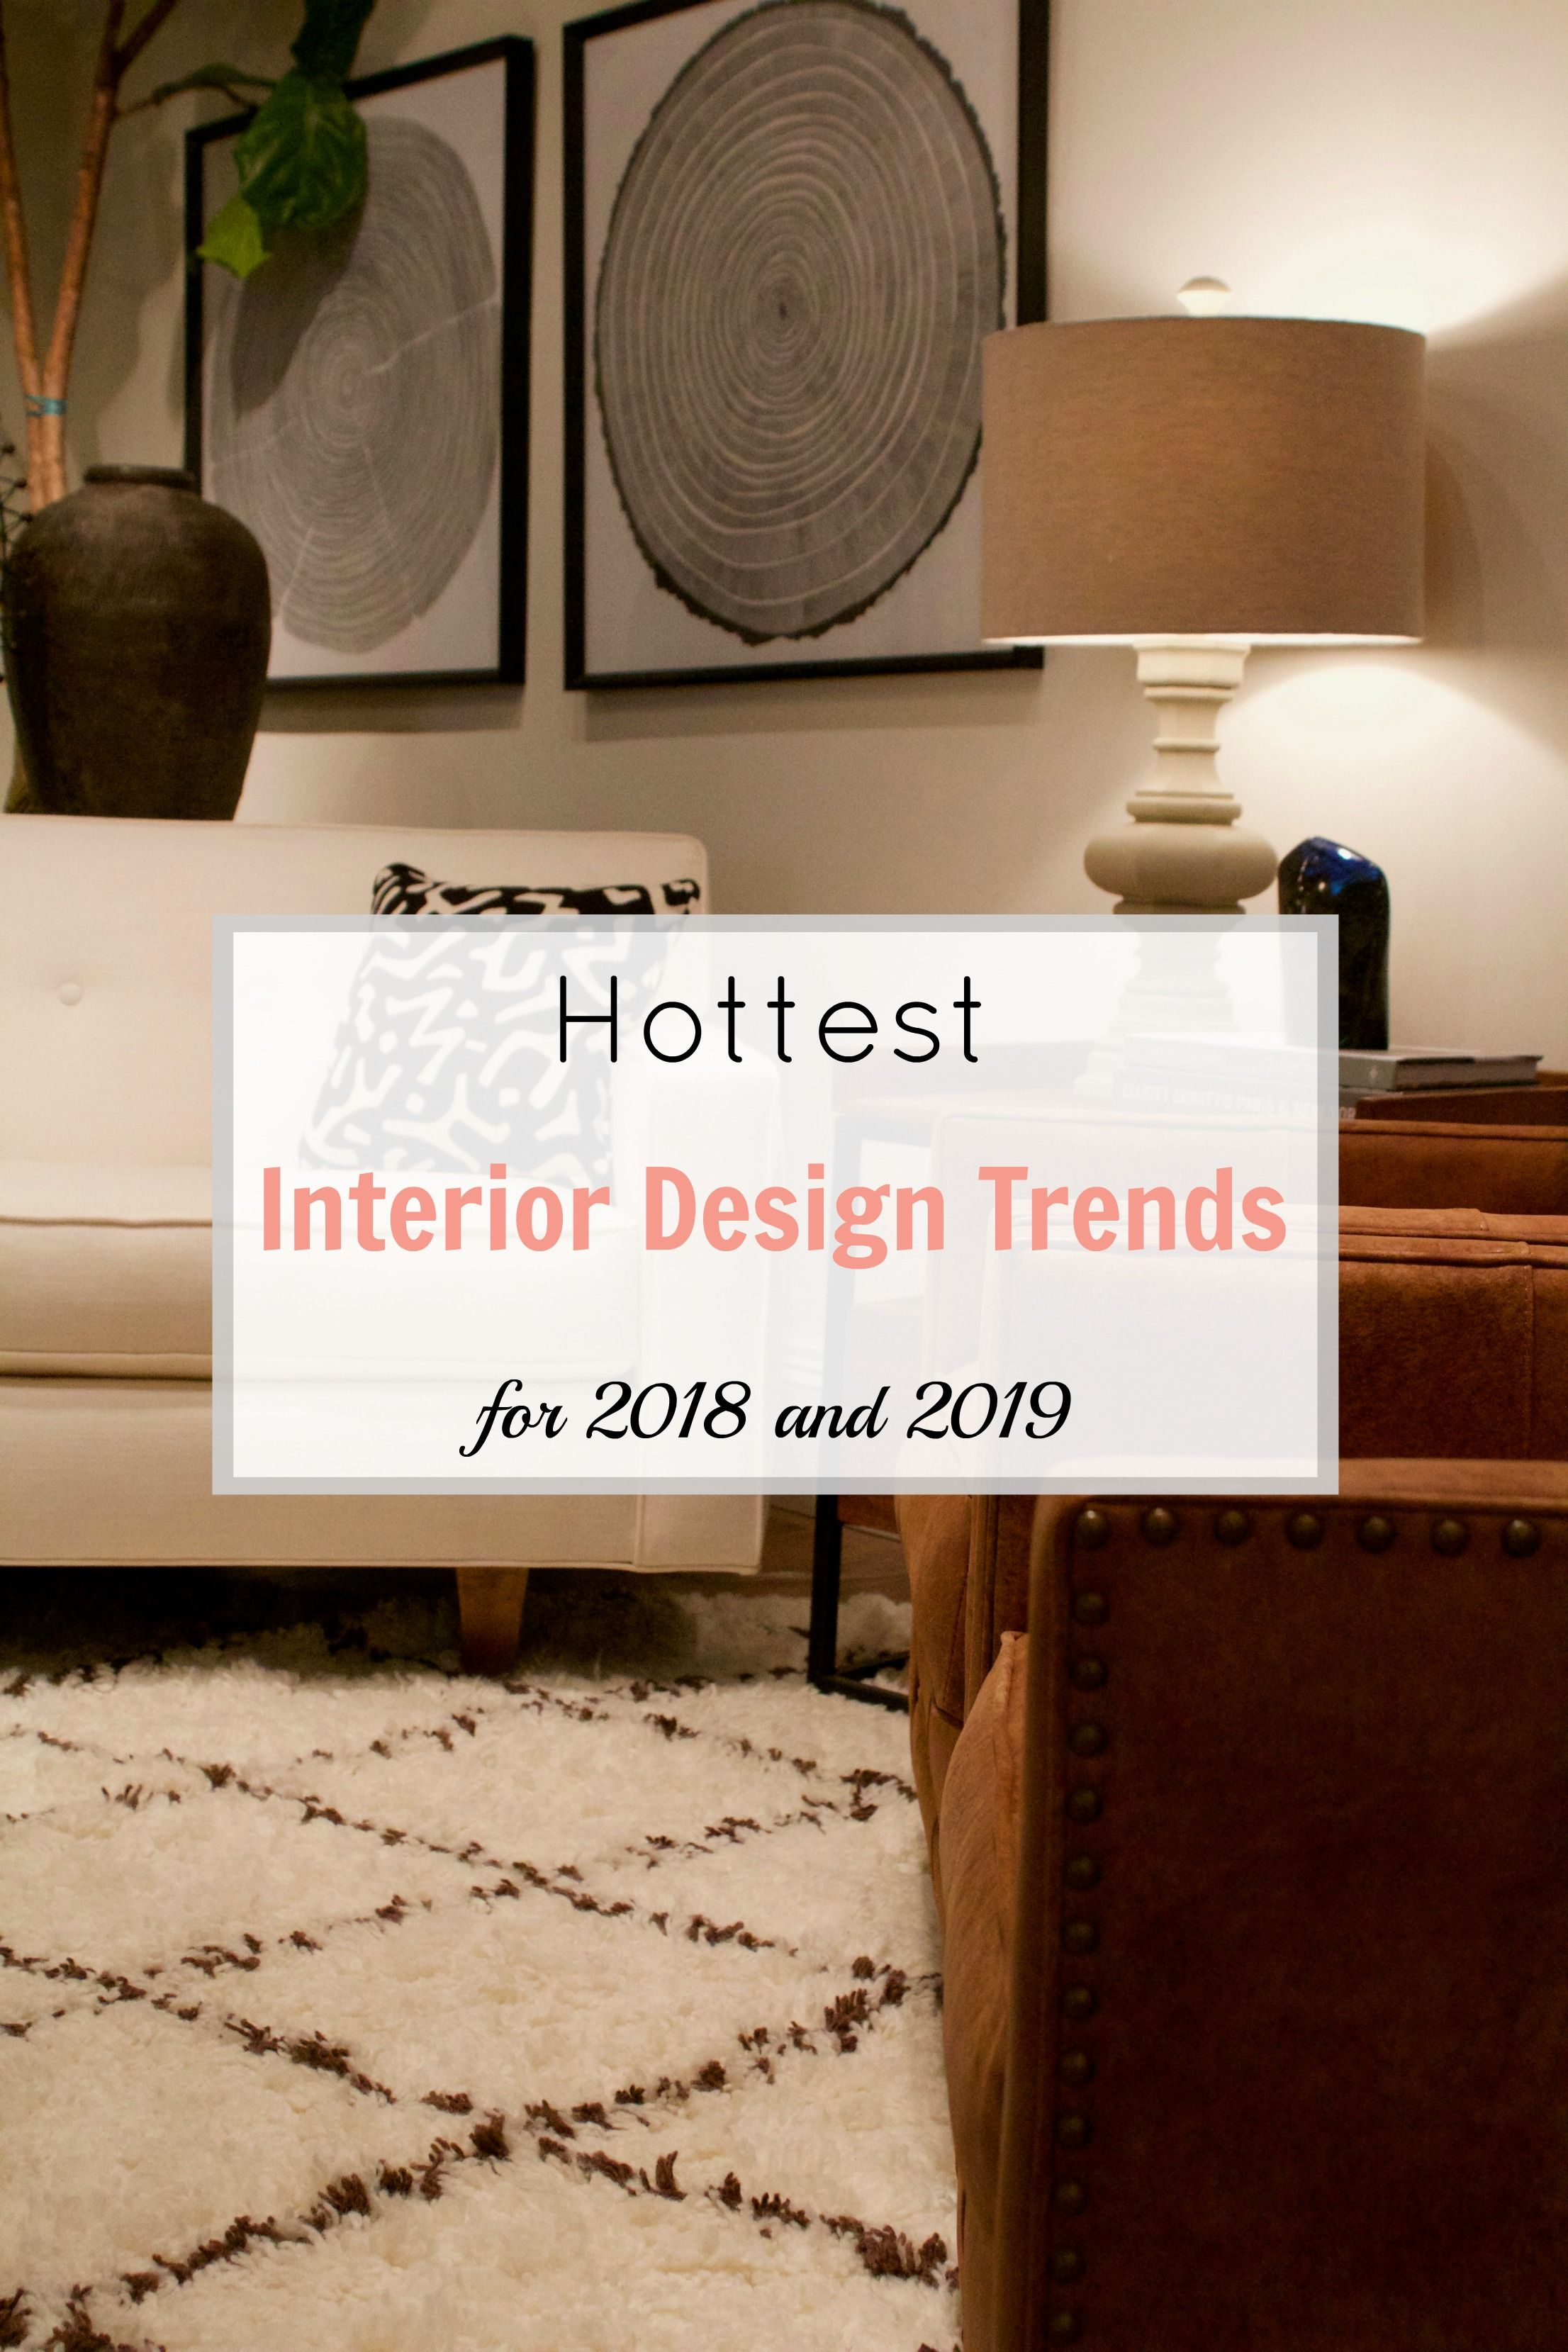 Hottest Interior Design Trends For 2018 And 2019 With Images